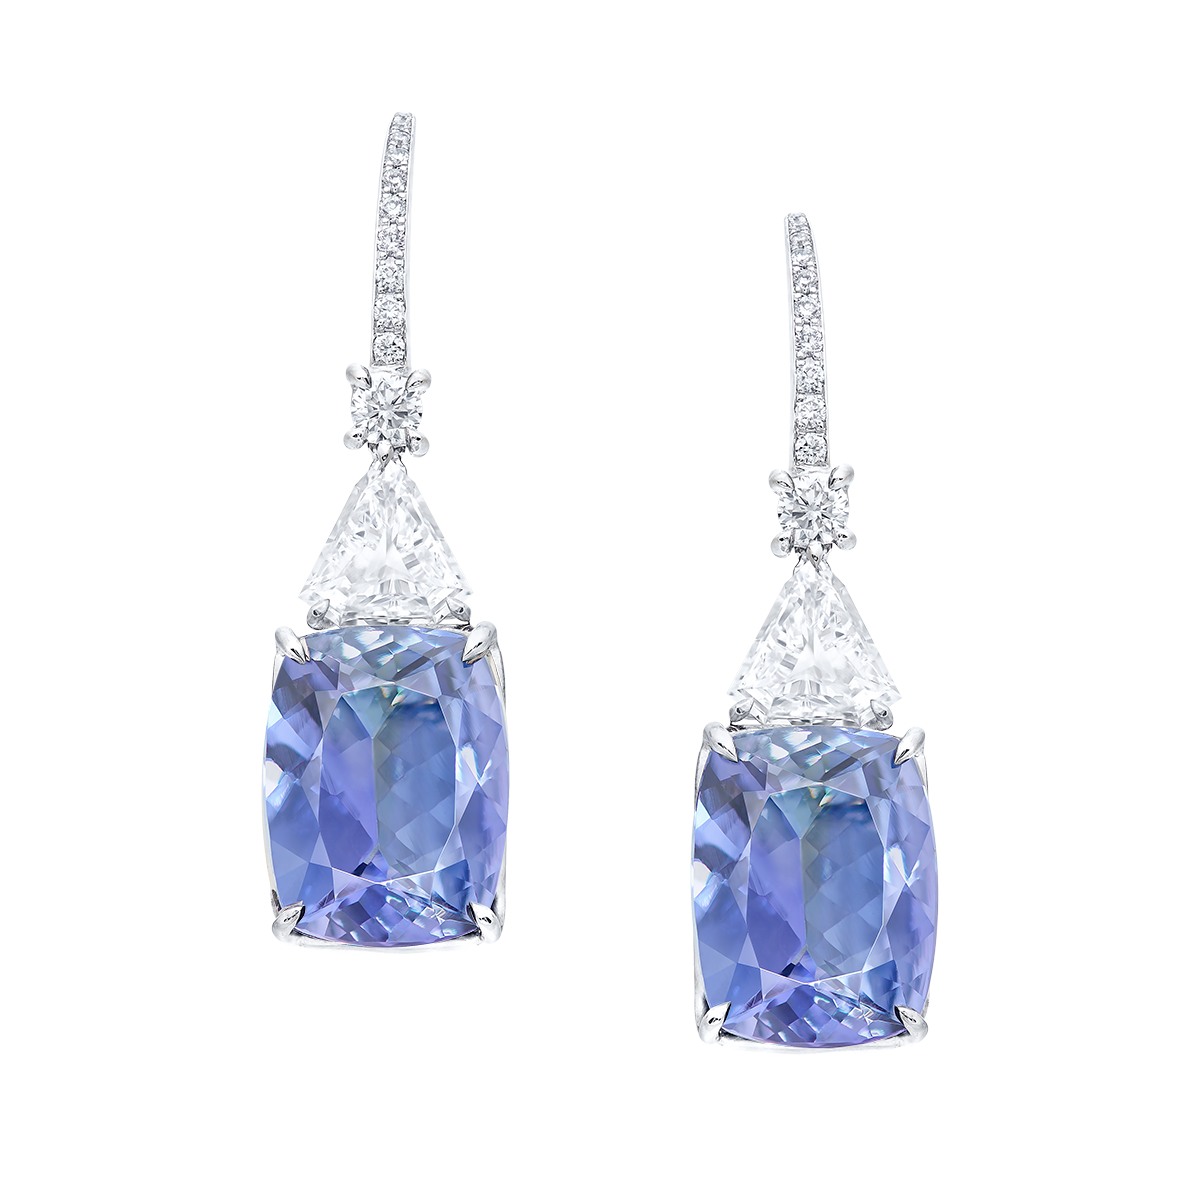 10.11克拉 丹泉石耳環